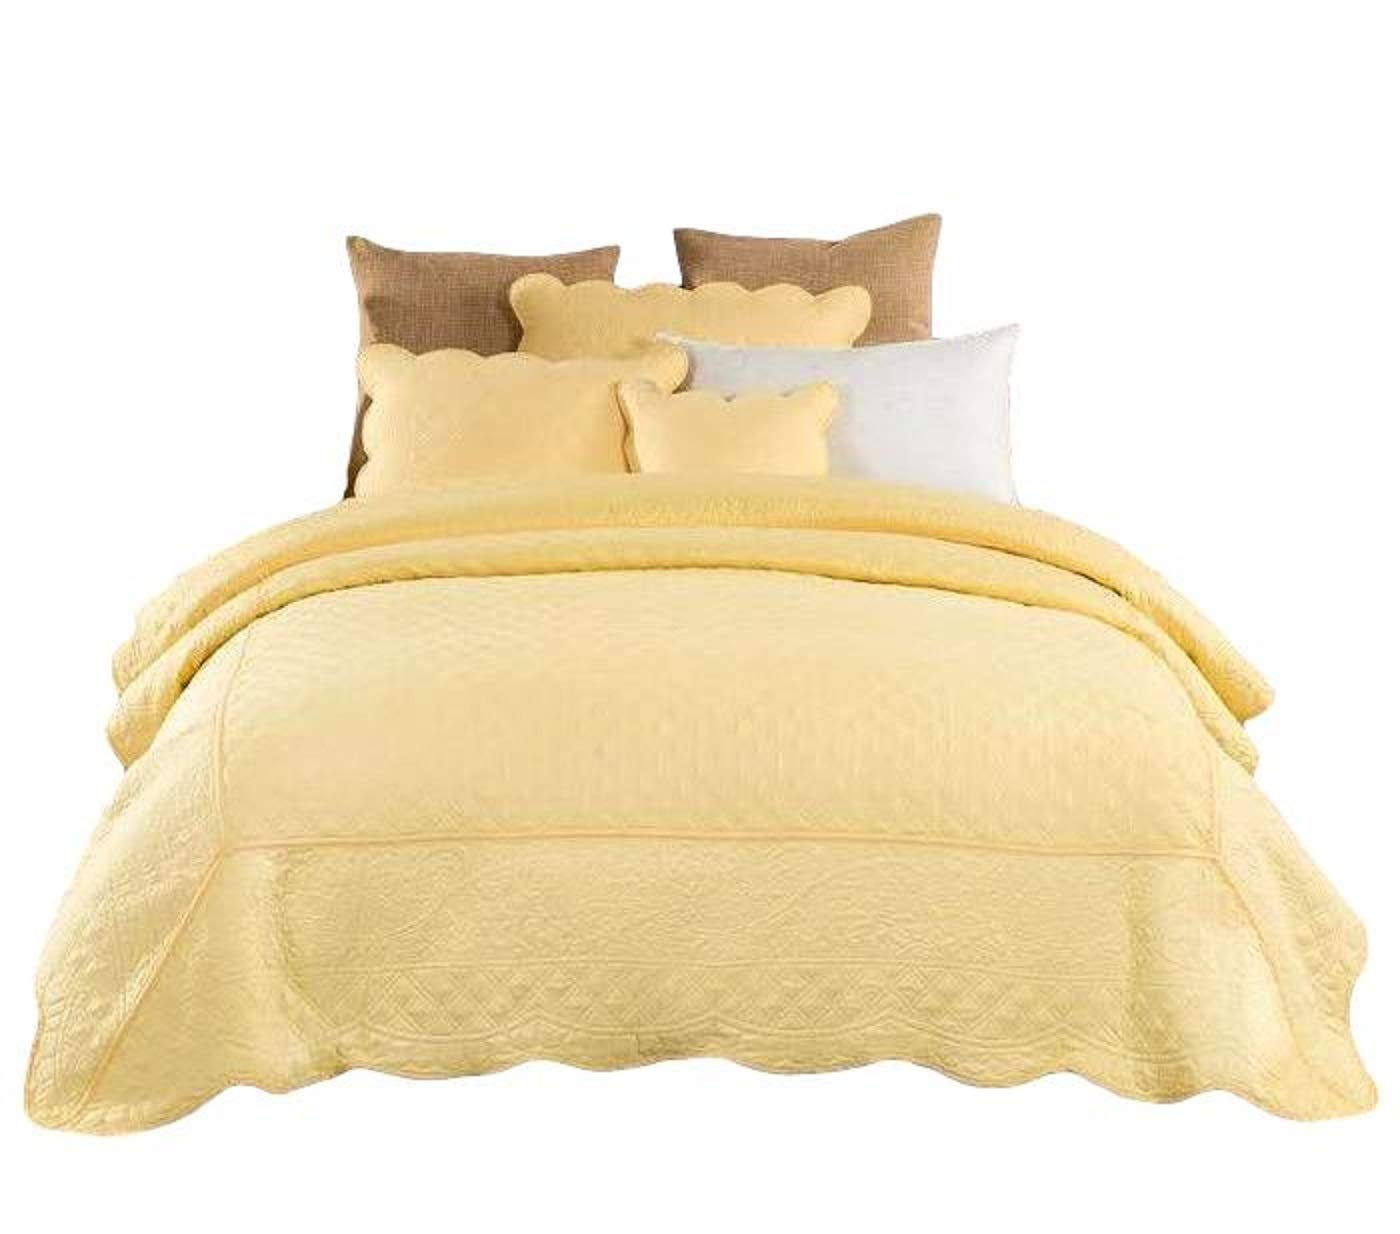 Tache 3 Pieces Solid Quilted Yellow Buttercup Puffs Matelasse Bedspread Coverlet Set, Queen by Tache Home Fashion